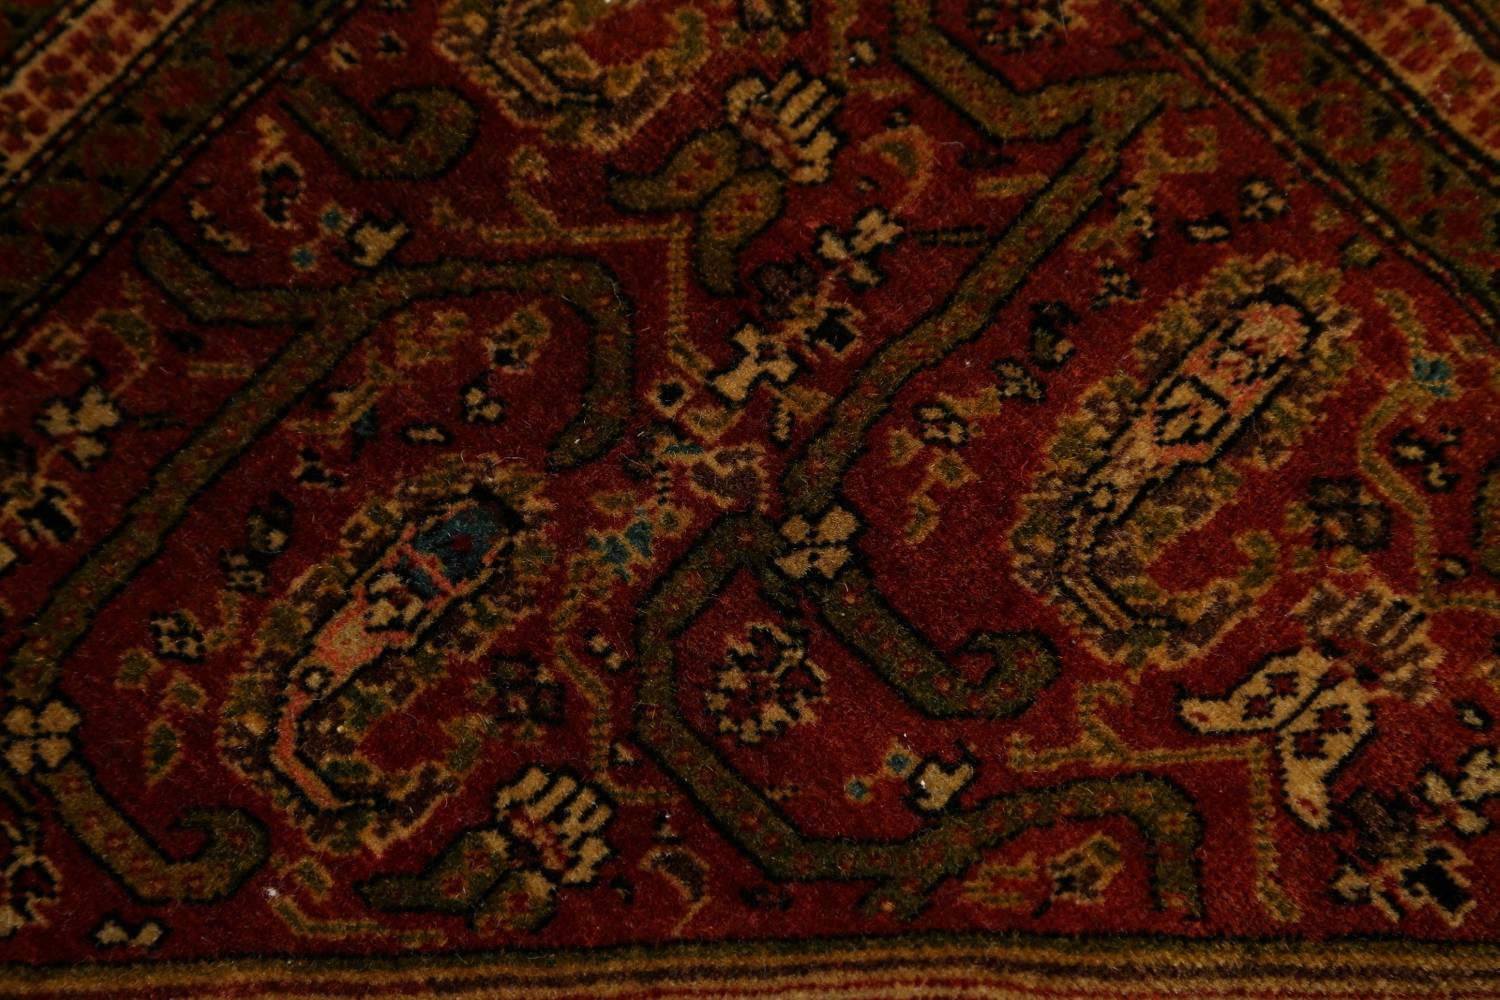 Pre-1900 Vegetable Dye Sarouk Farahan Persian Hand-Knotted 3x3 Square Rug image 10